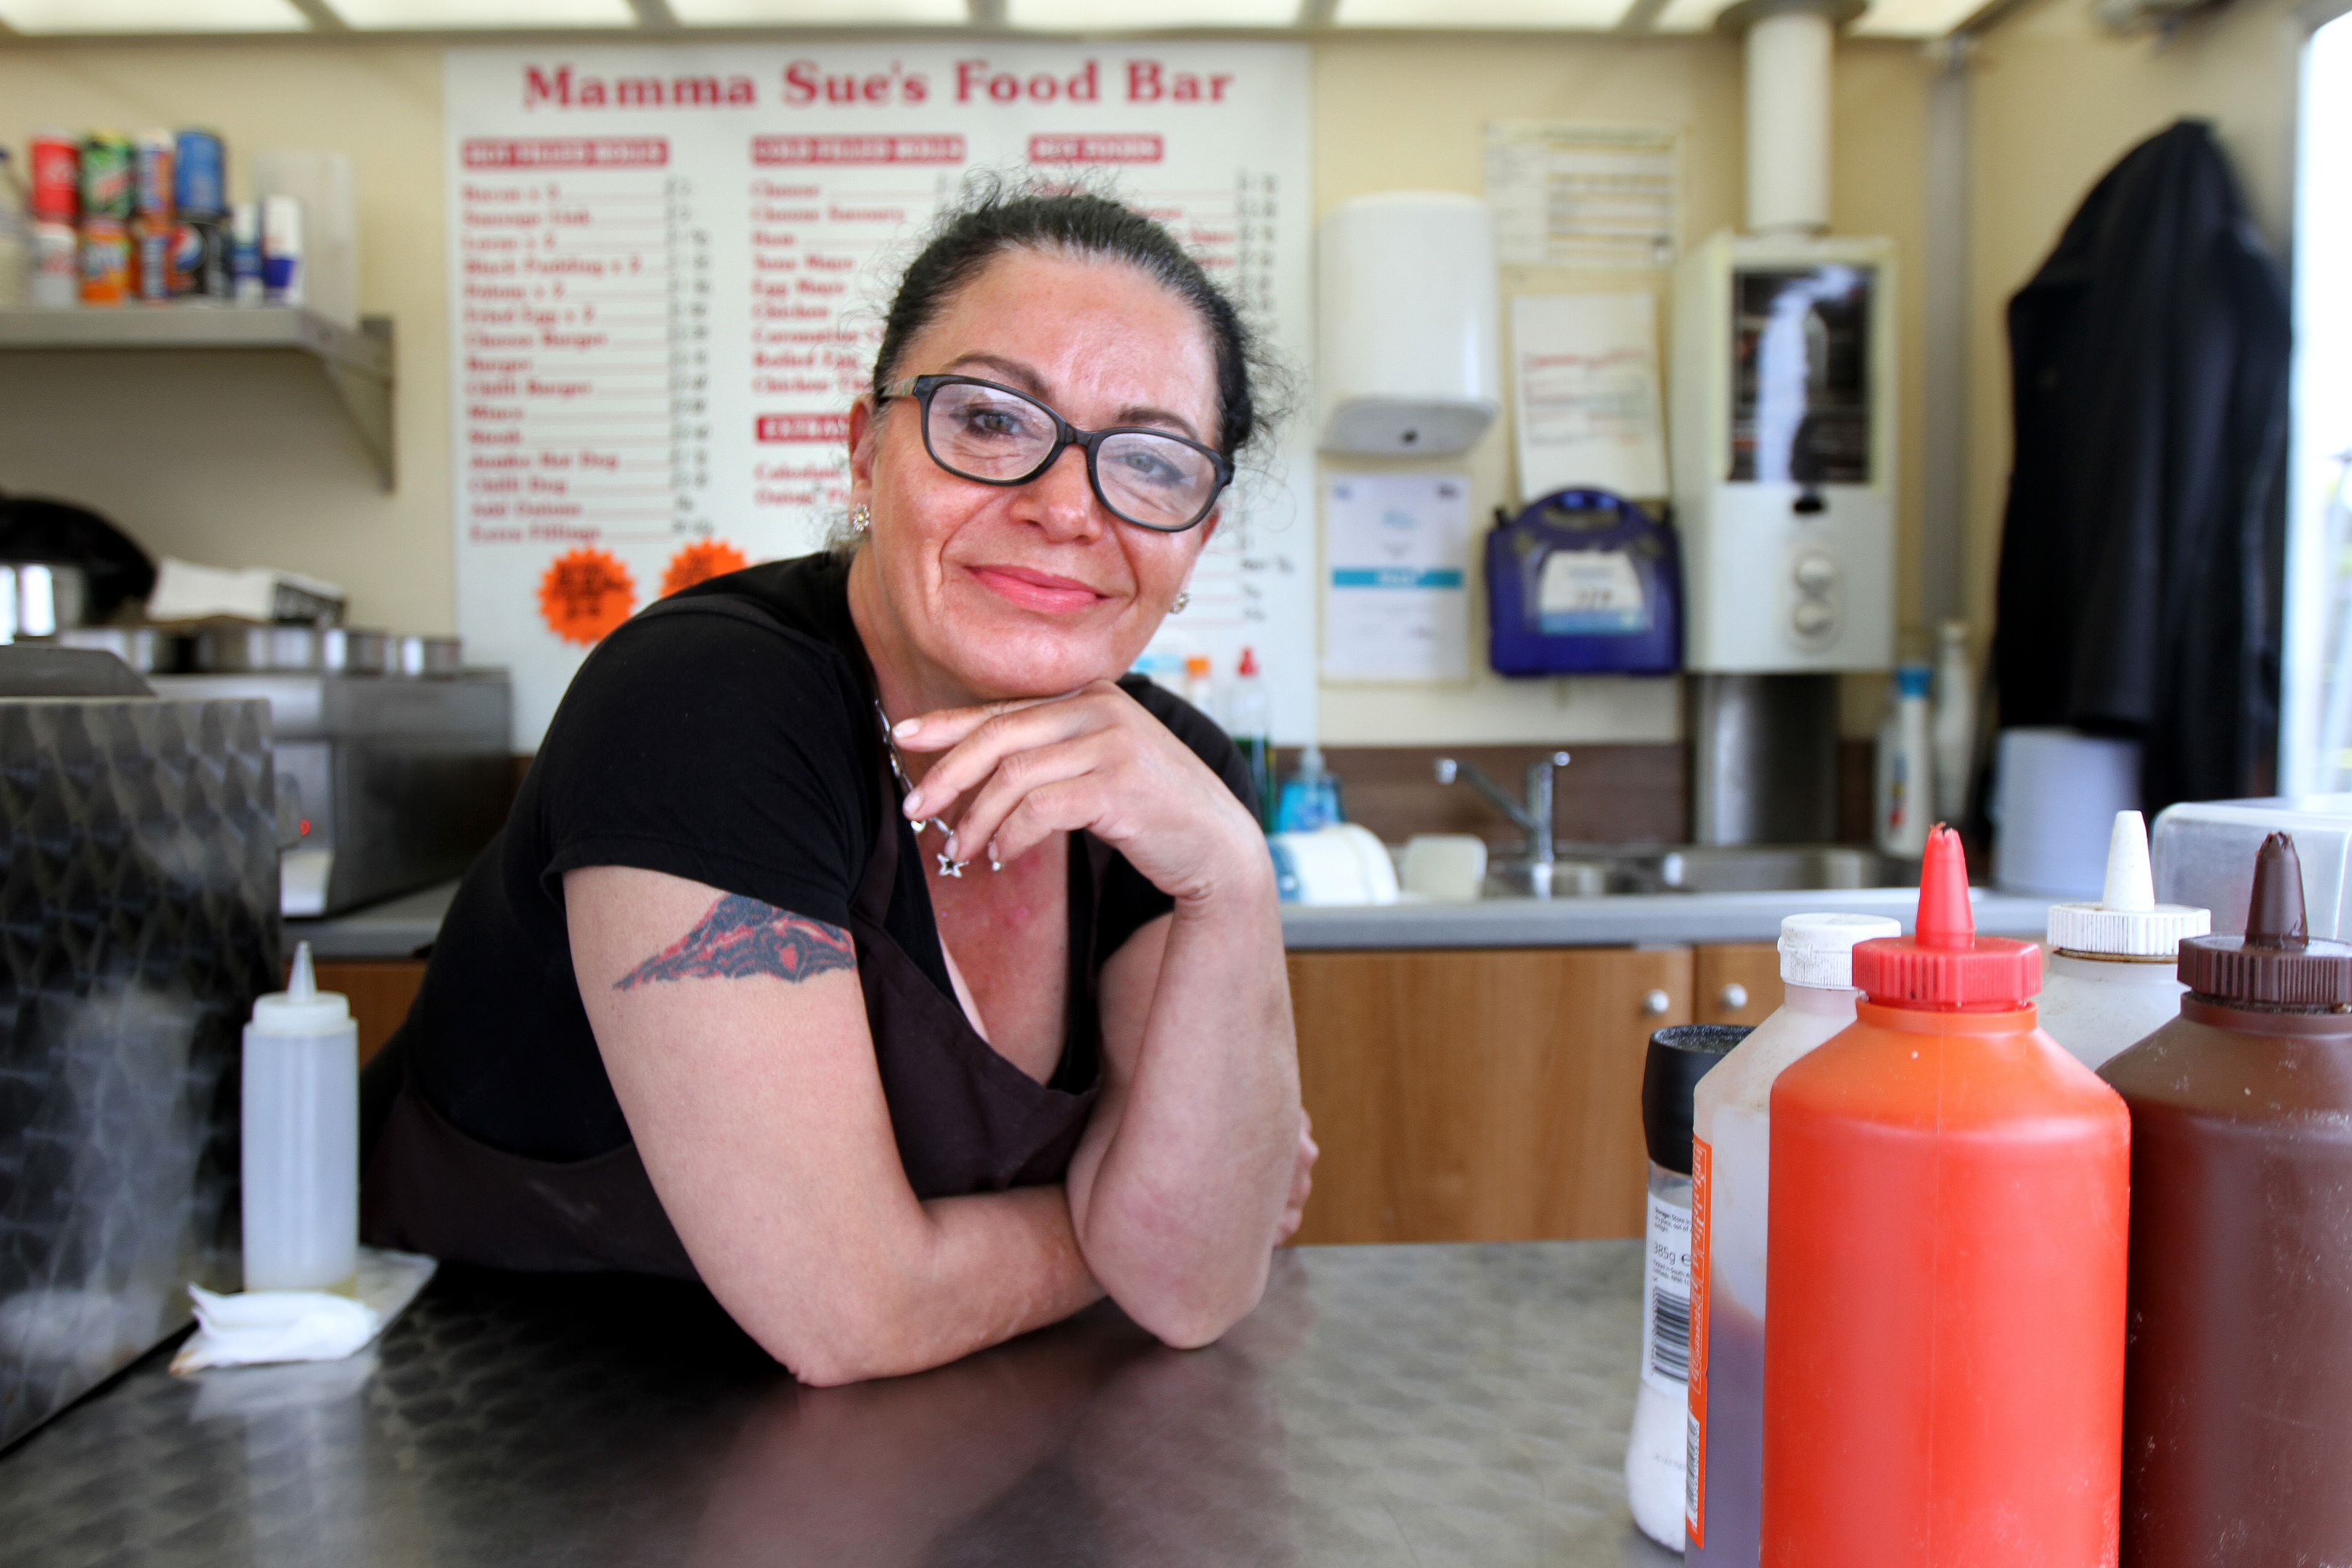 Sue Slamond's burger van Mamma Sue's was broken into.